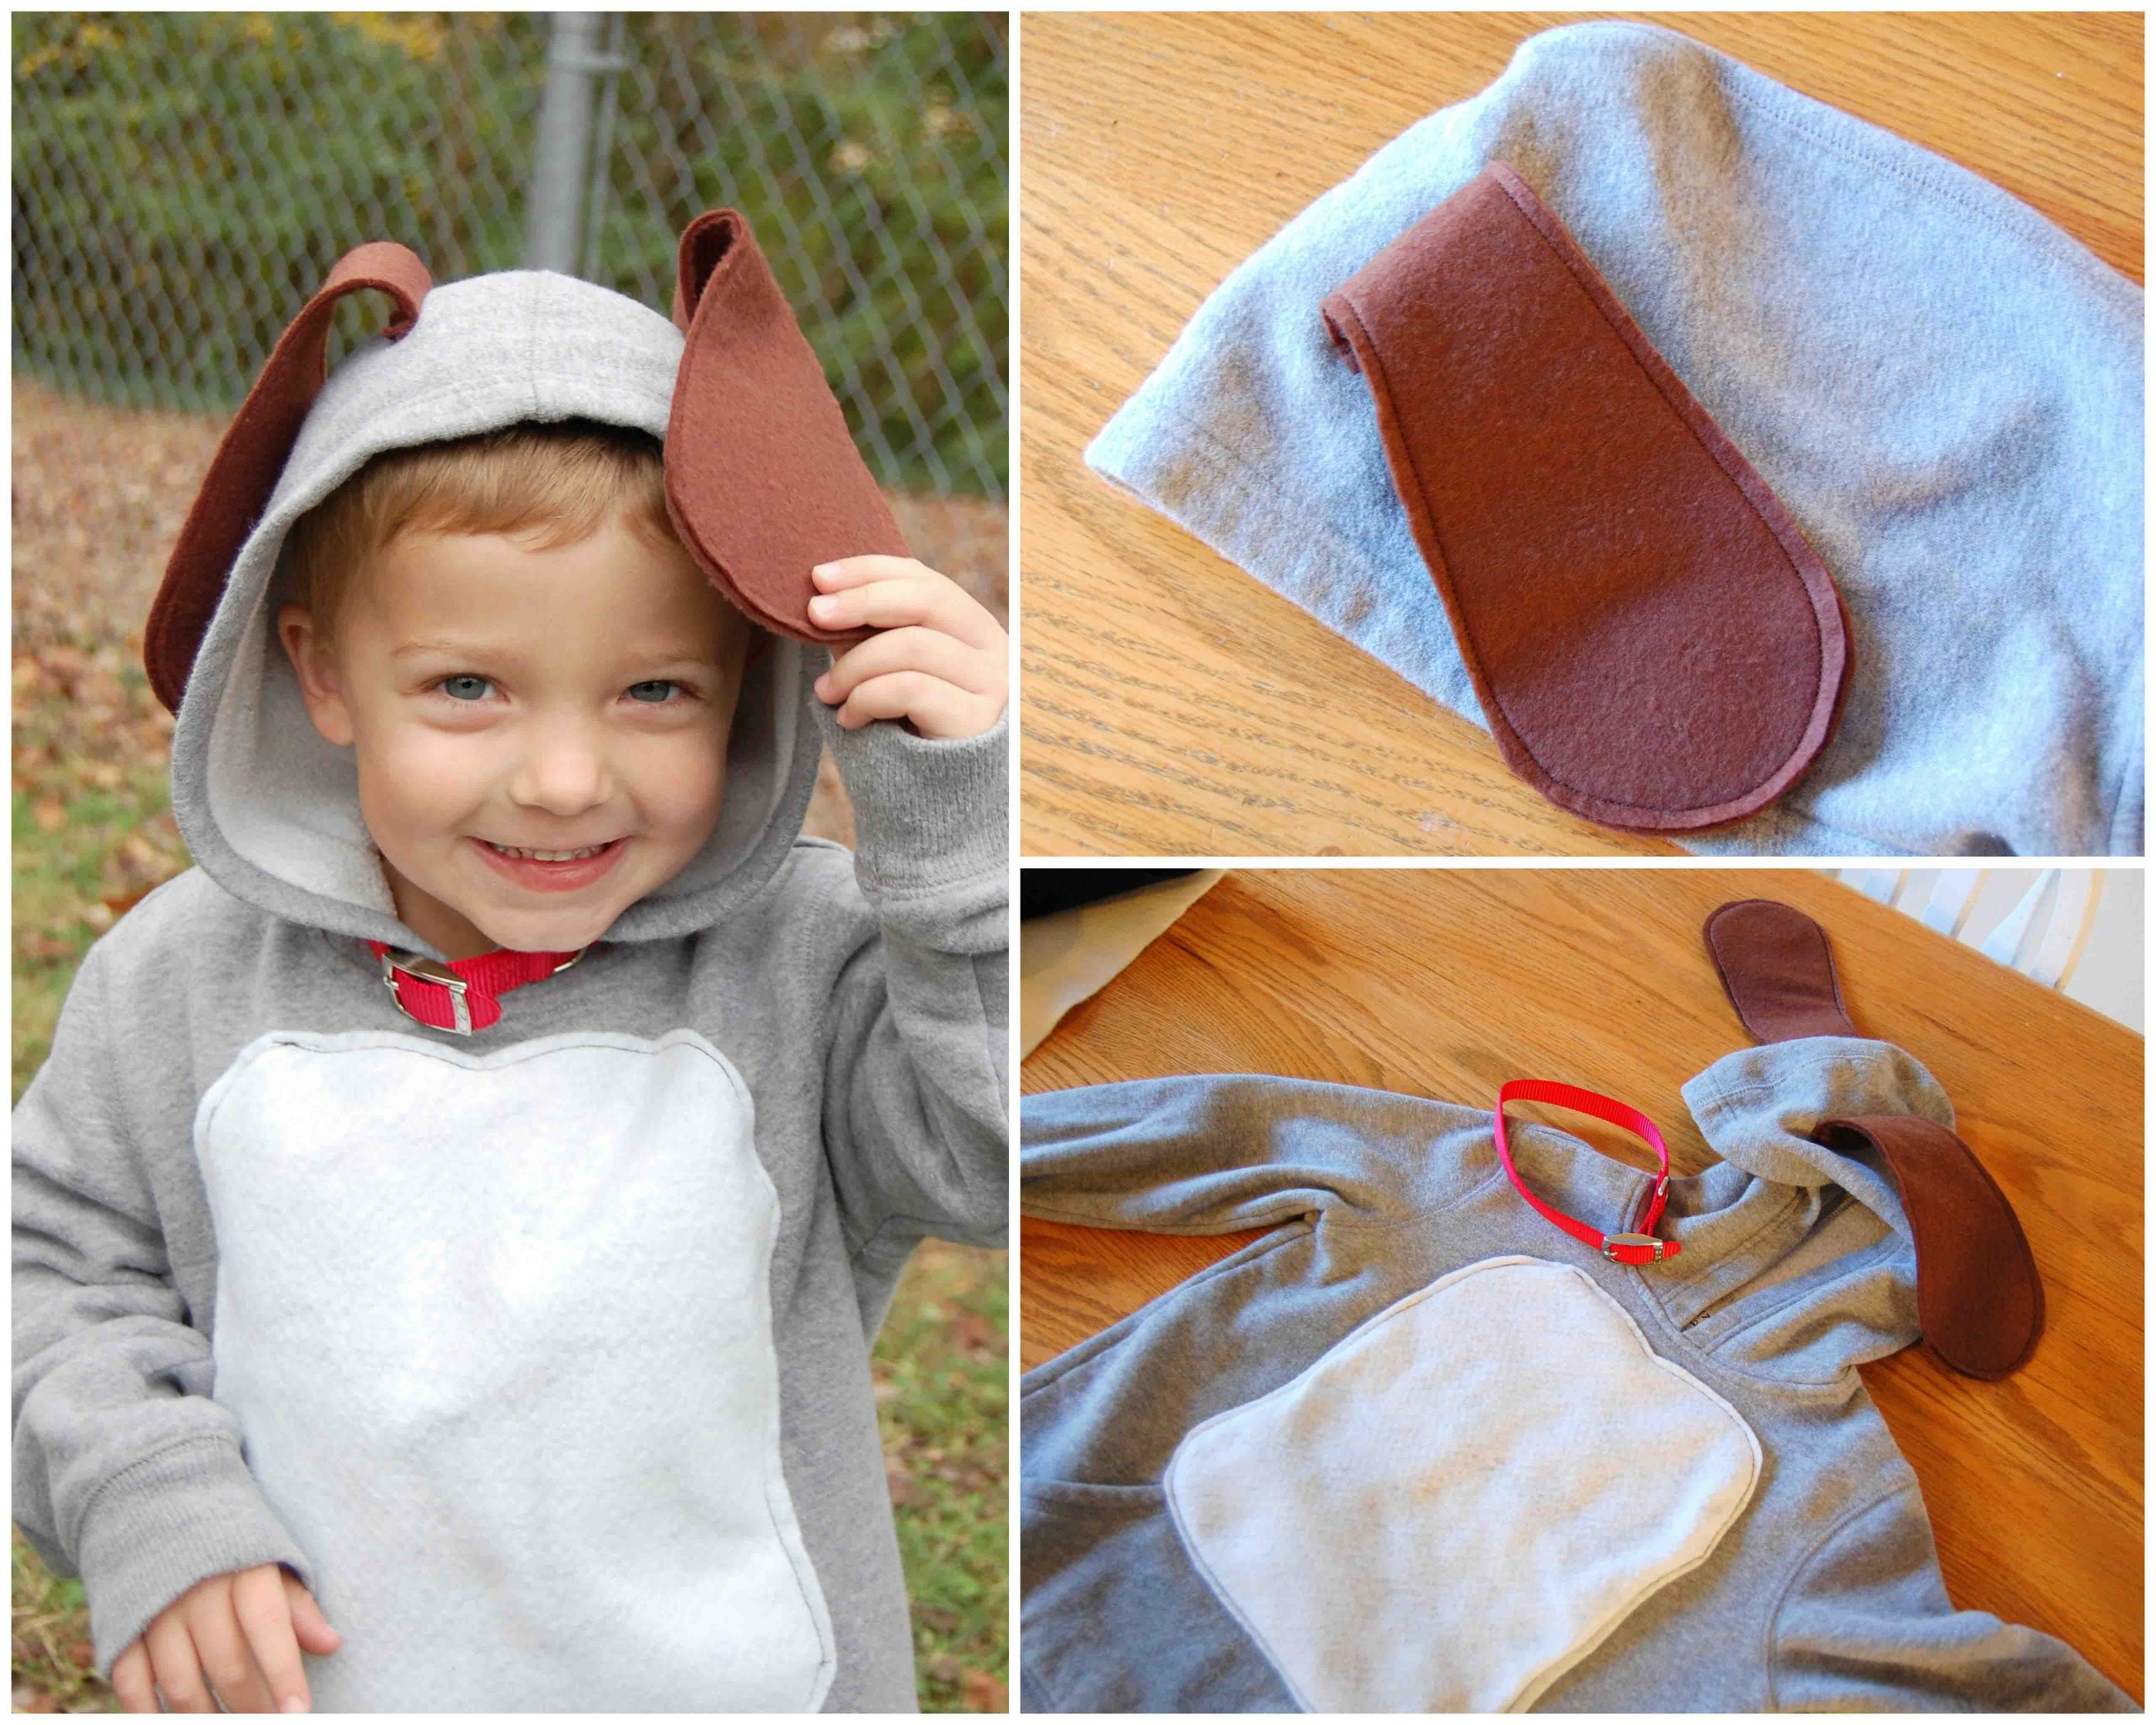 DIY Dog Costume For Kids  [Pinning my own because I had trouble finding a homemade